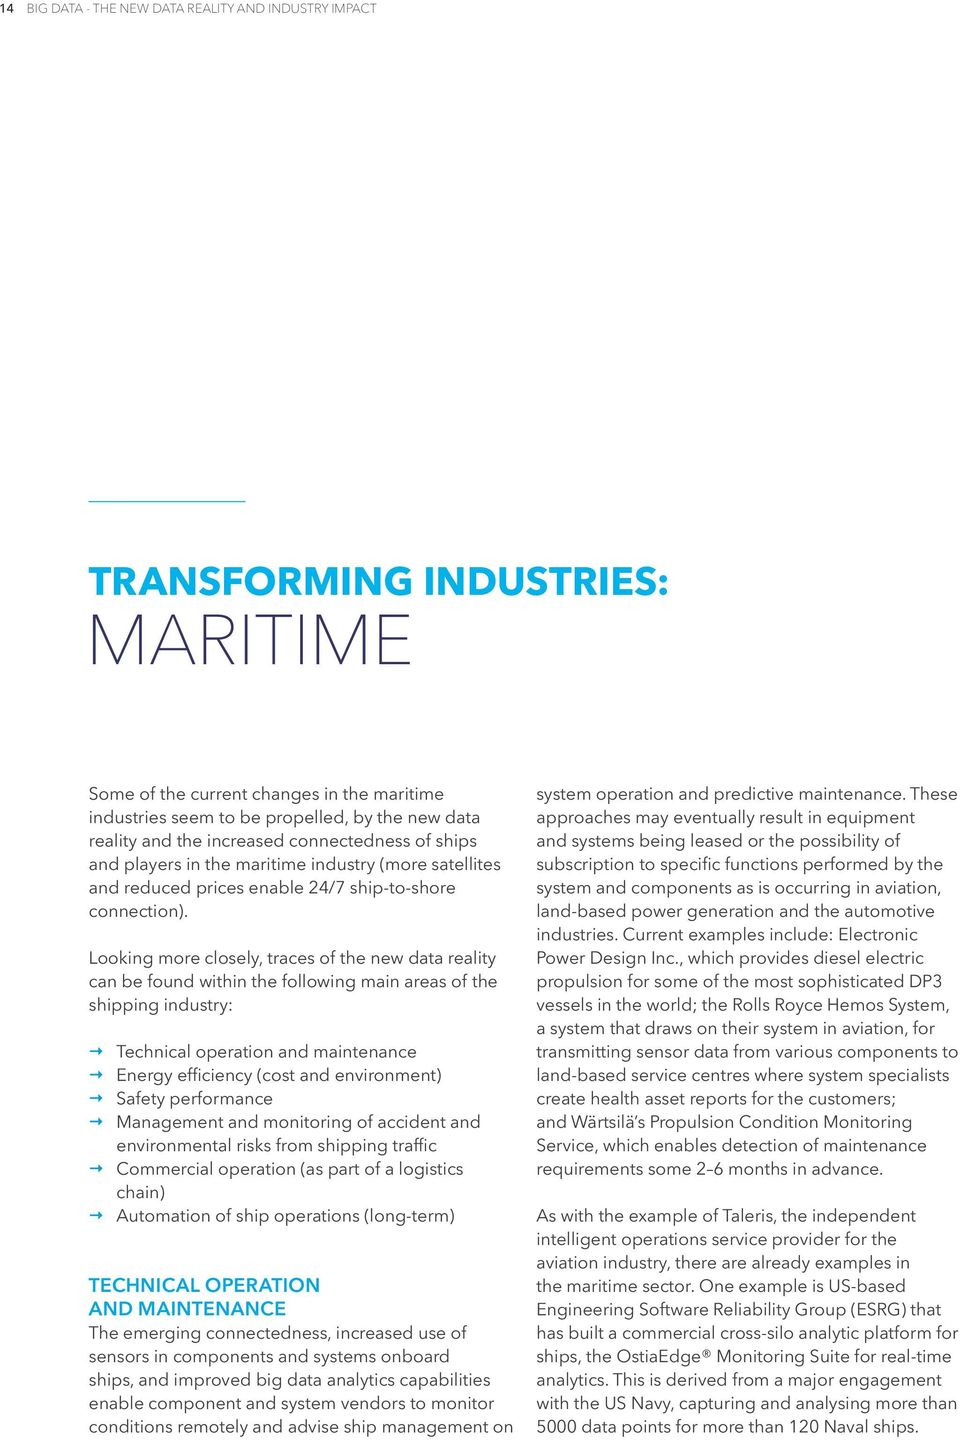 Looking more closely, traces of the new data reality can be found within the following main areas of the shipping industry: Technical operation and maintenance Energy efficiency (cost and